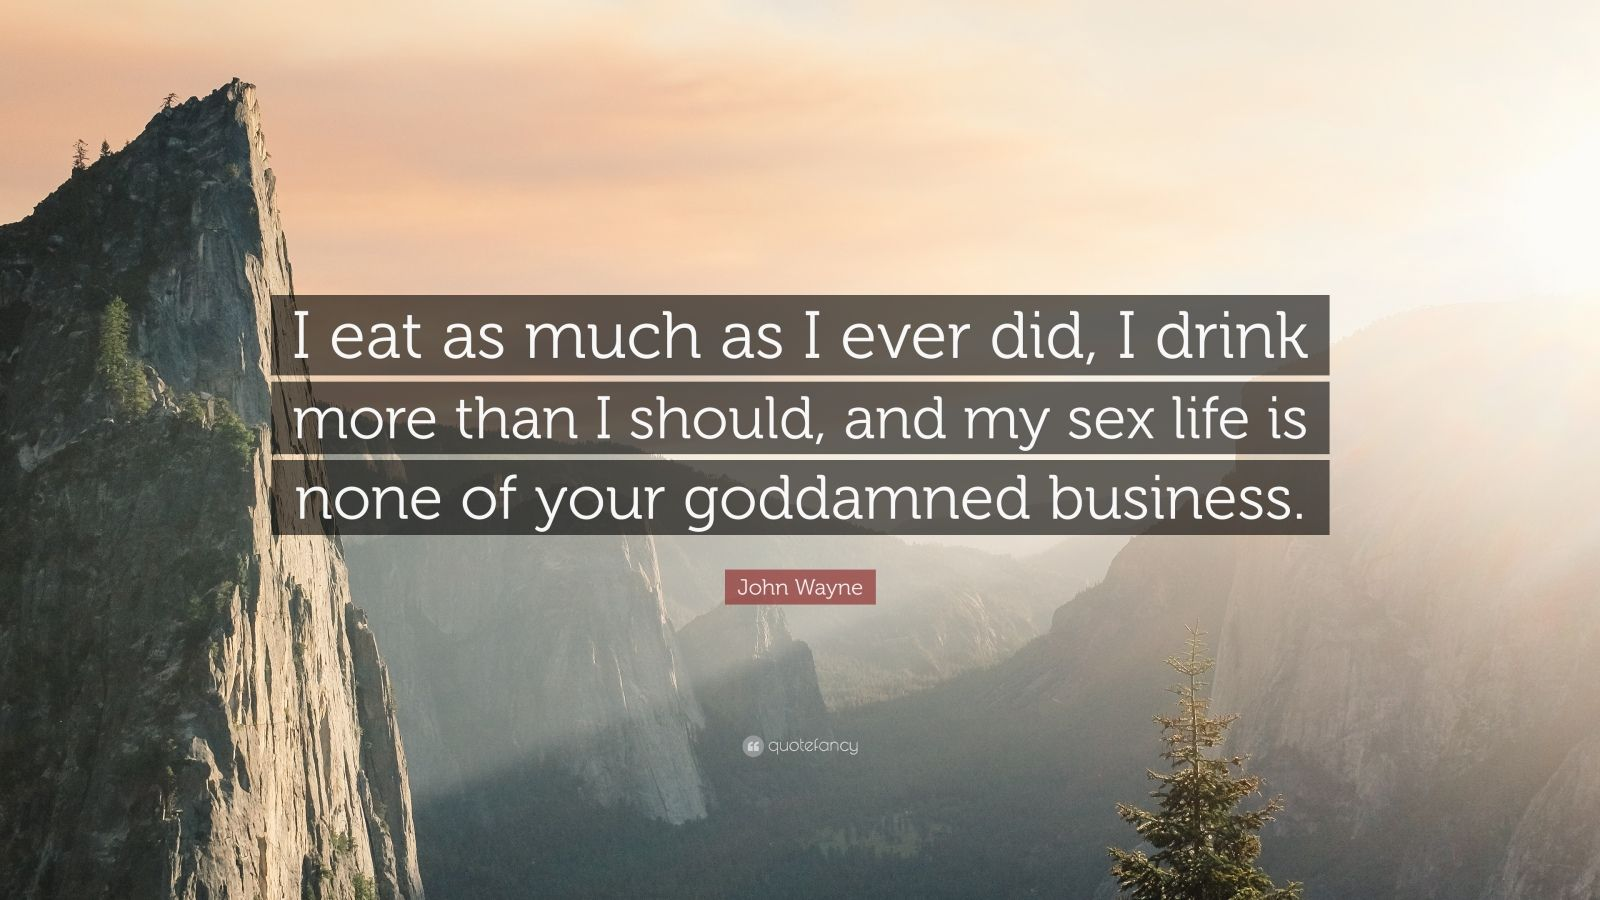 """John Wayne Quote: """"I eat as much as I ever did, I drink more than I should, and my sex life is none of your goddamned business."""""""